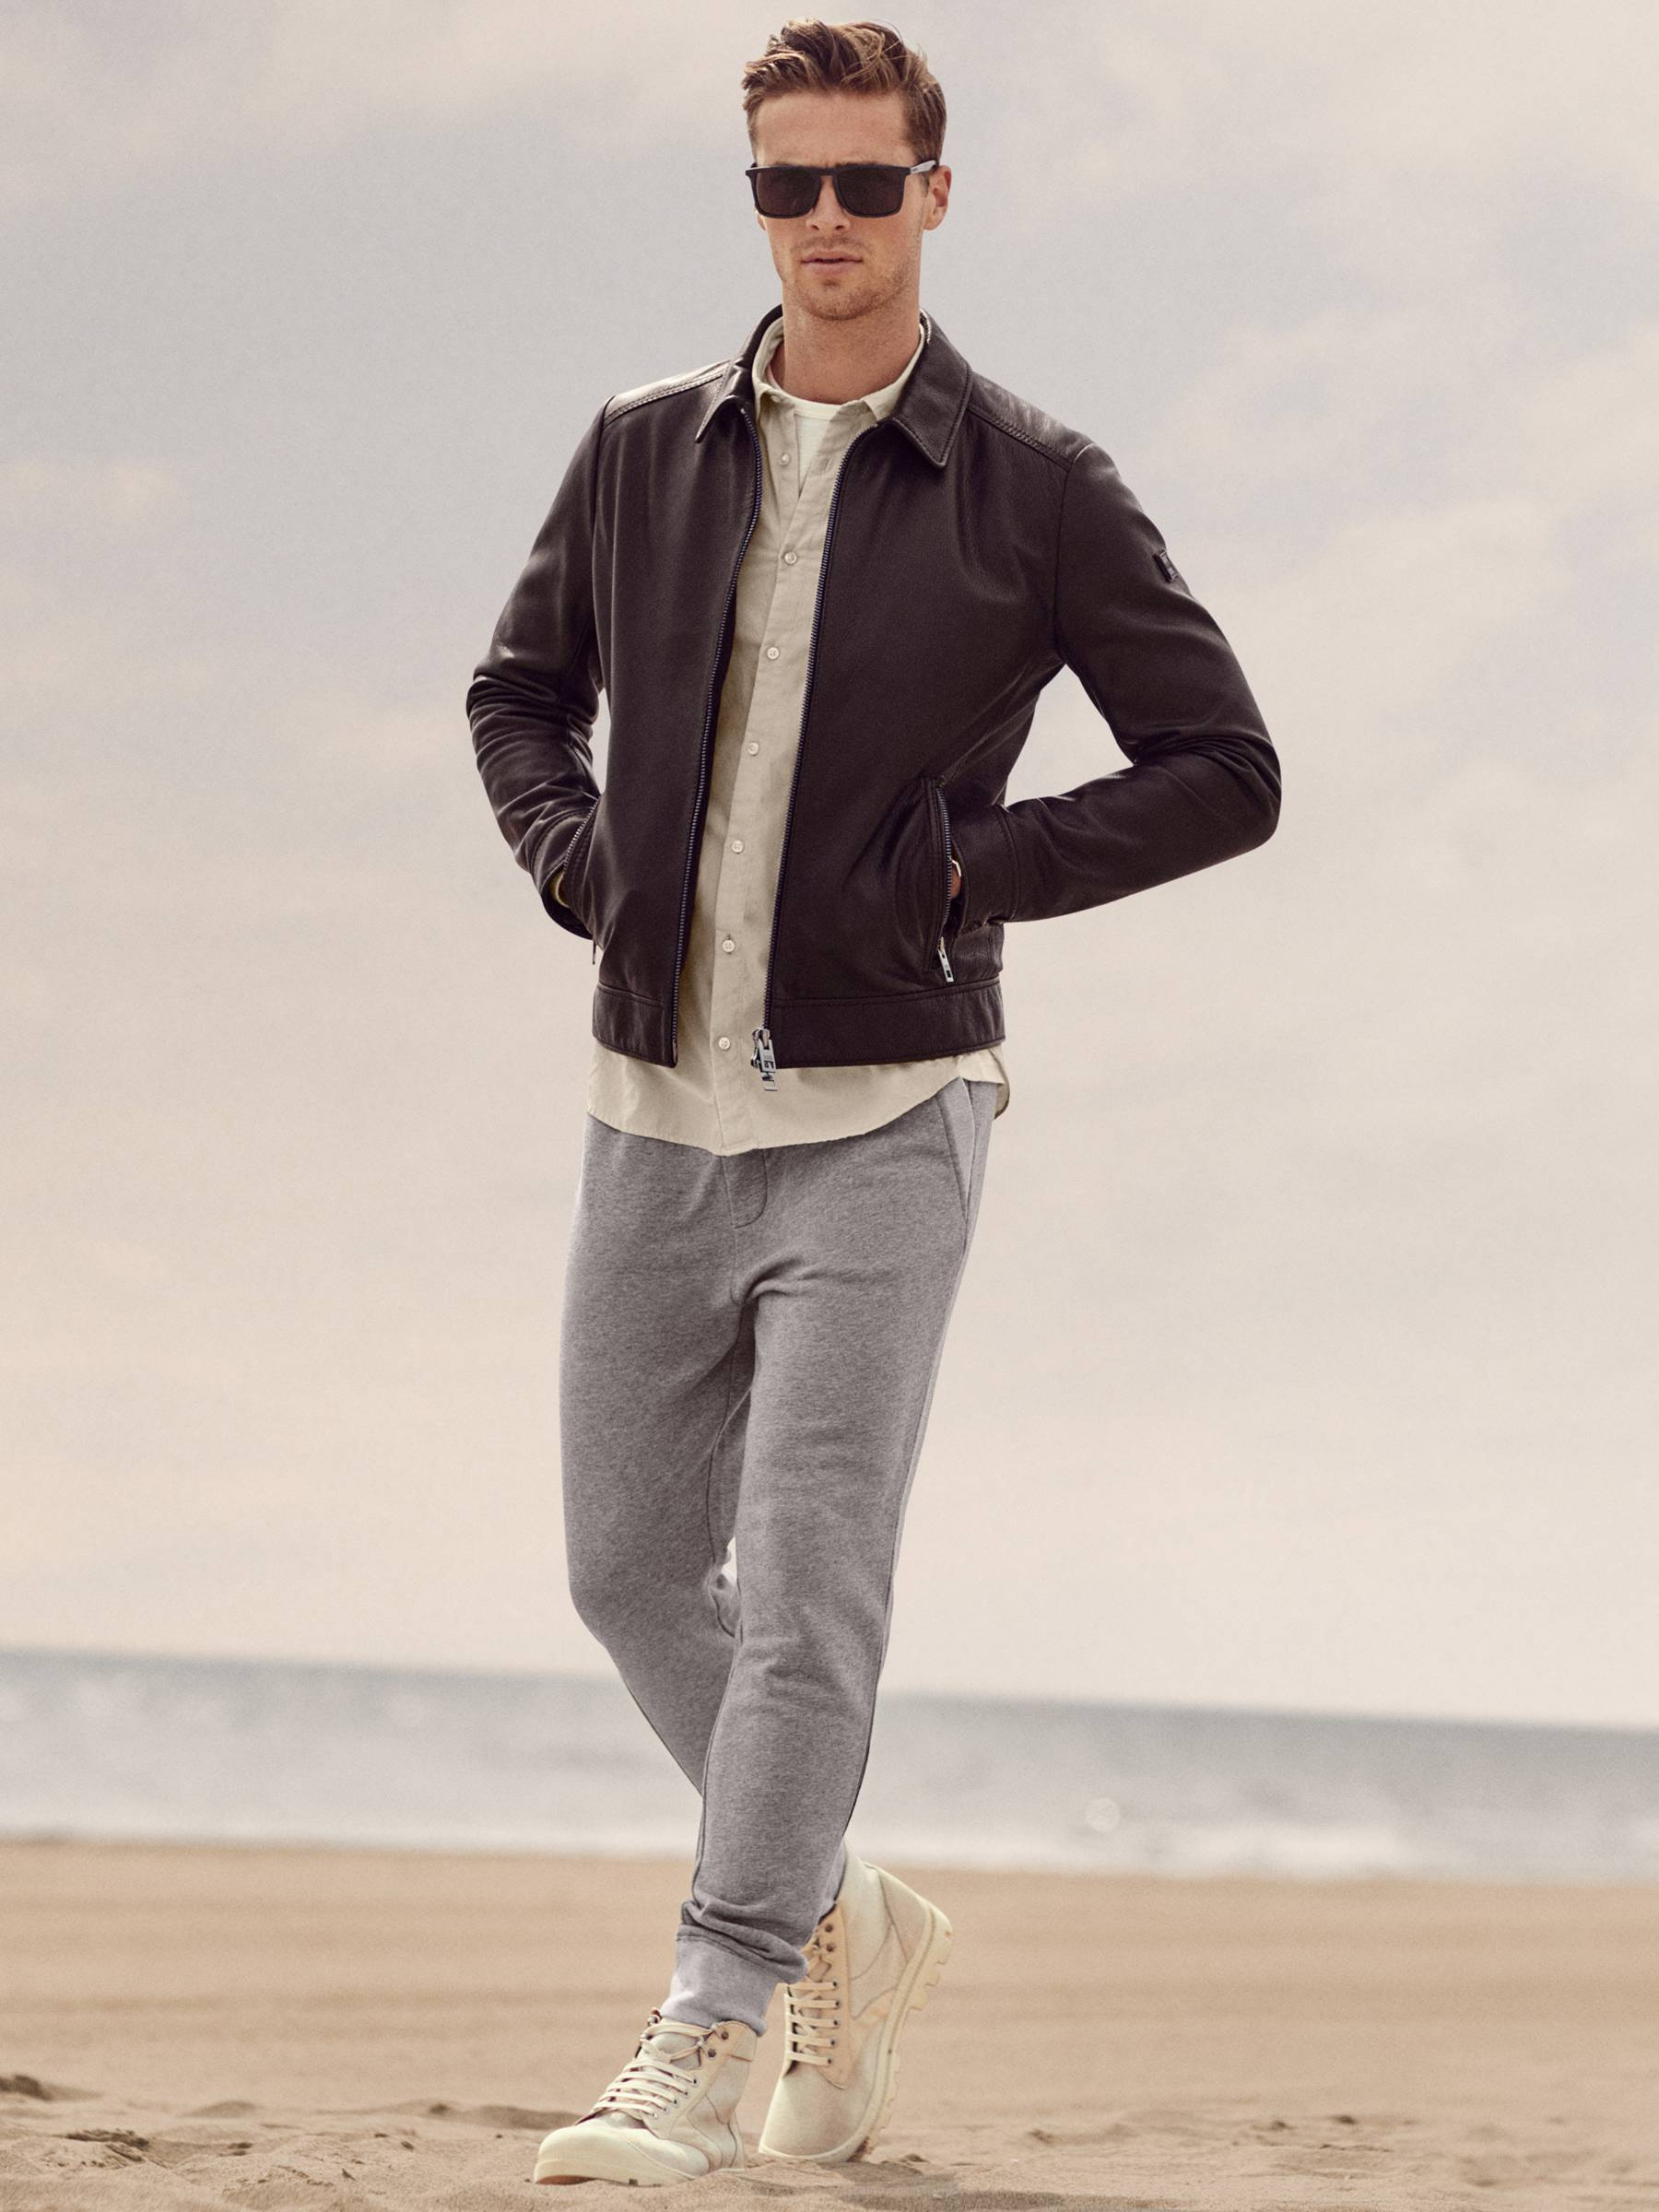 Boss male model in leather jacket and grey jeans